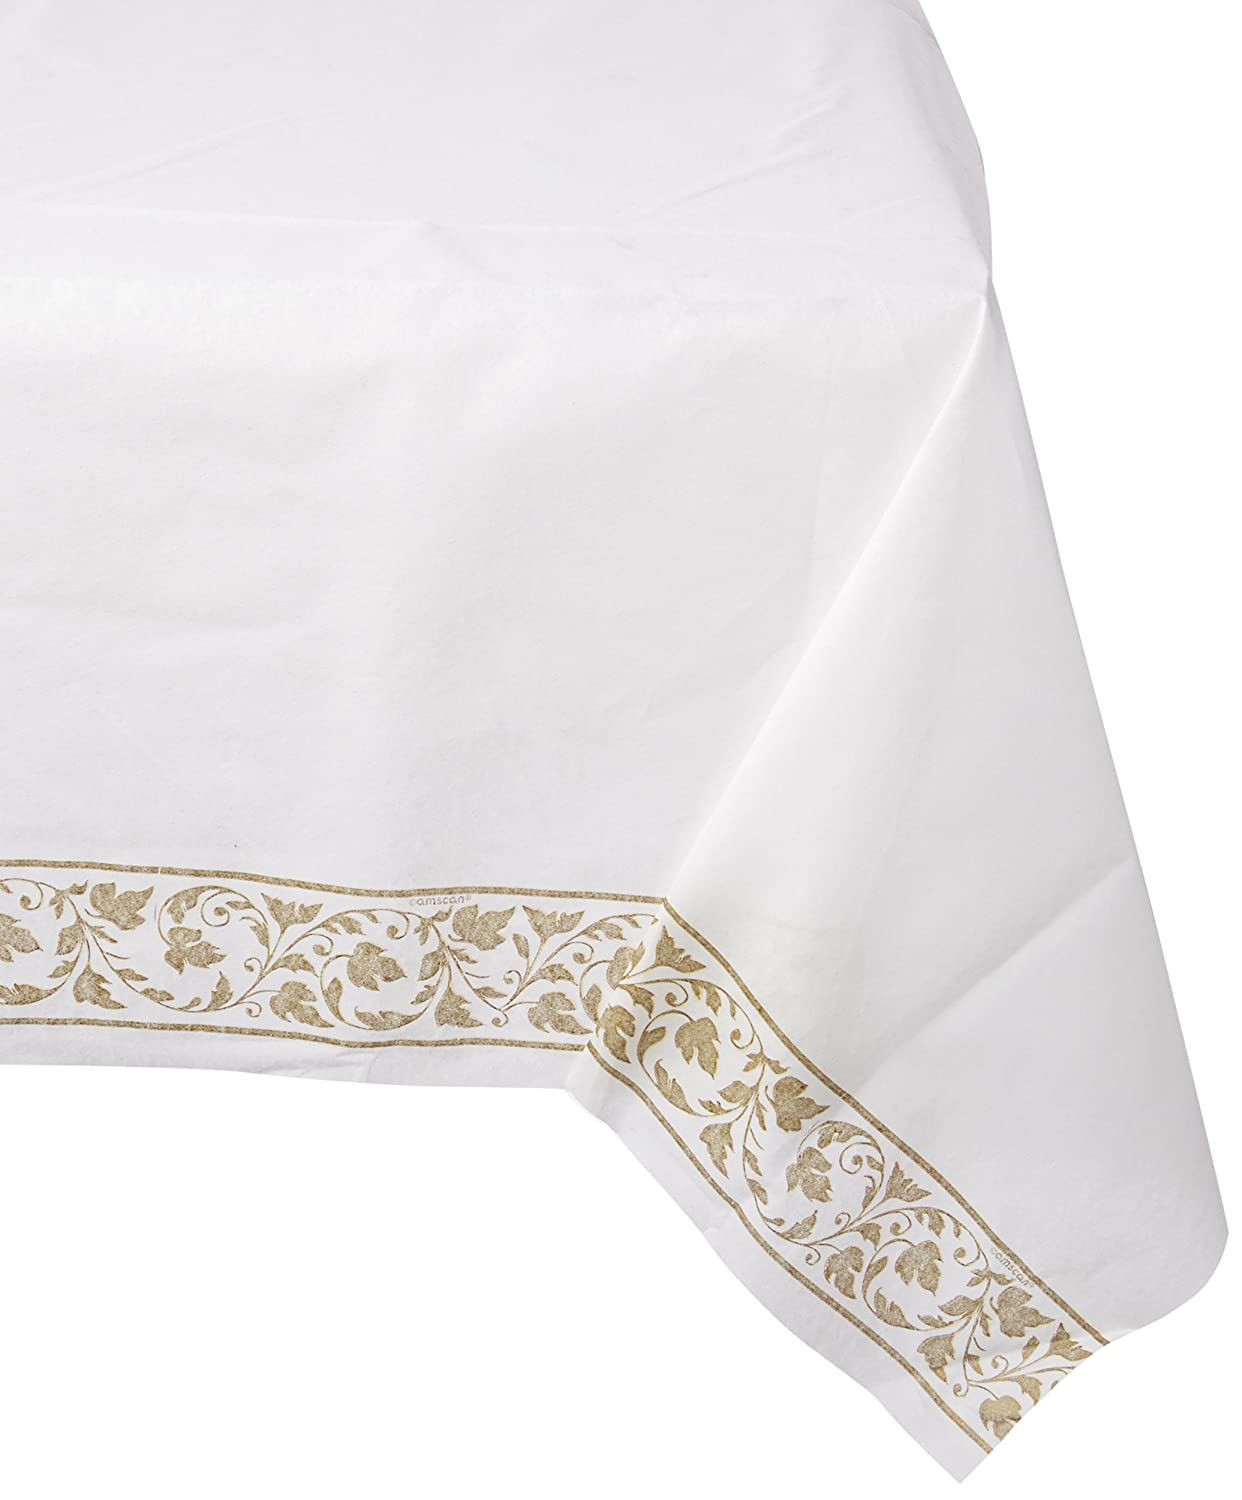 White with Gold Trim 54 x 108 Amscan Premium Quality Table Cover Party Supply |6 ct.